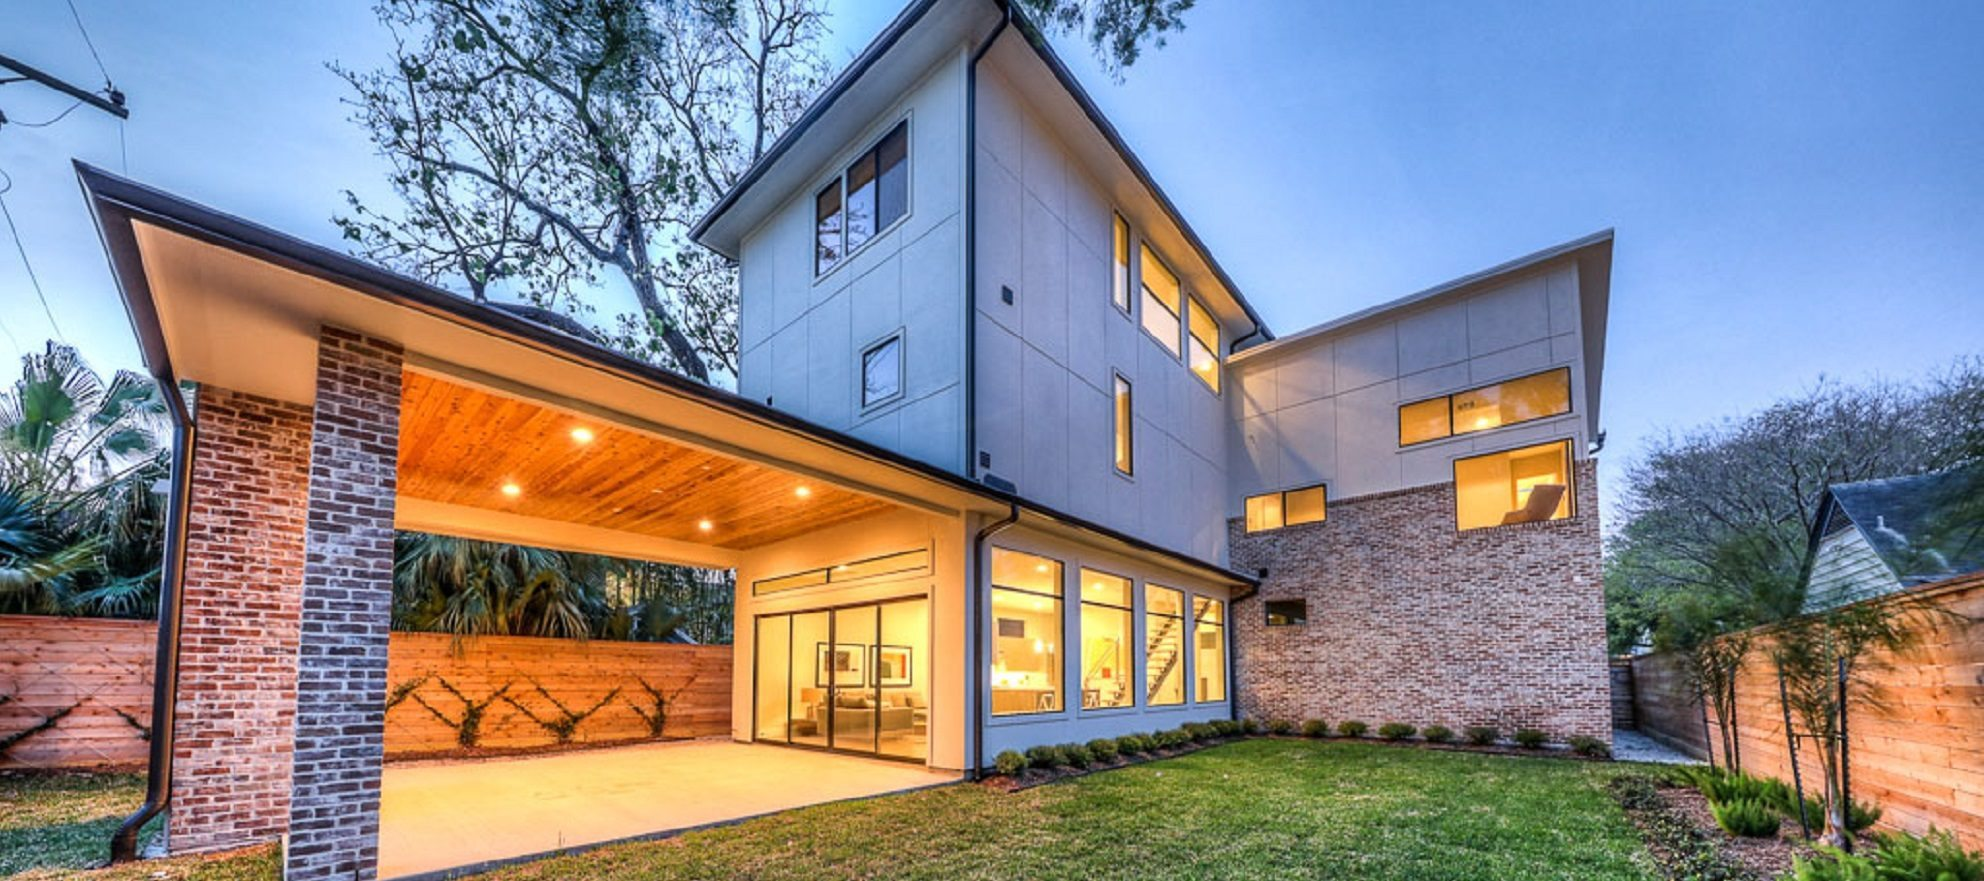 Luxury listing: custom-designed industrial and modern